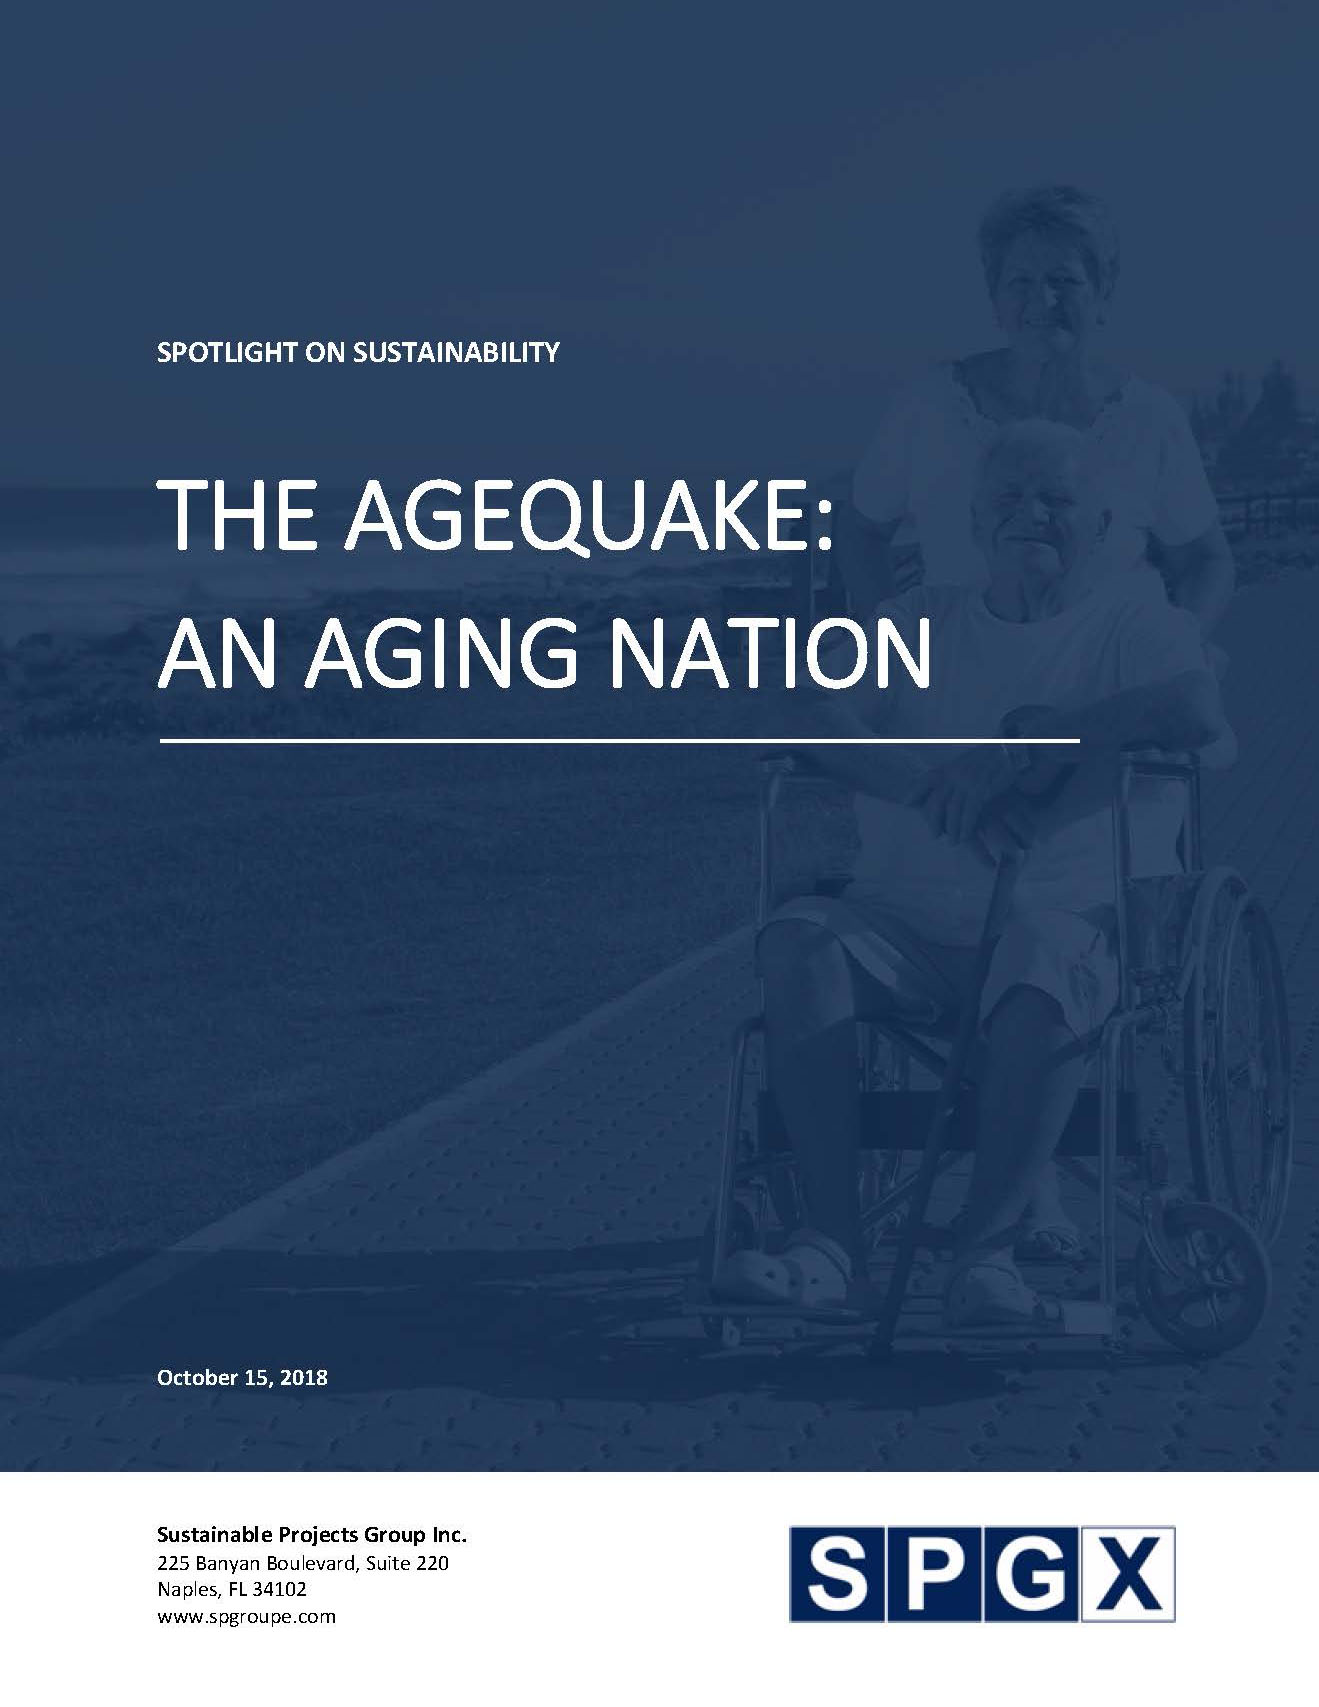 The Agequake: An Aging Nation